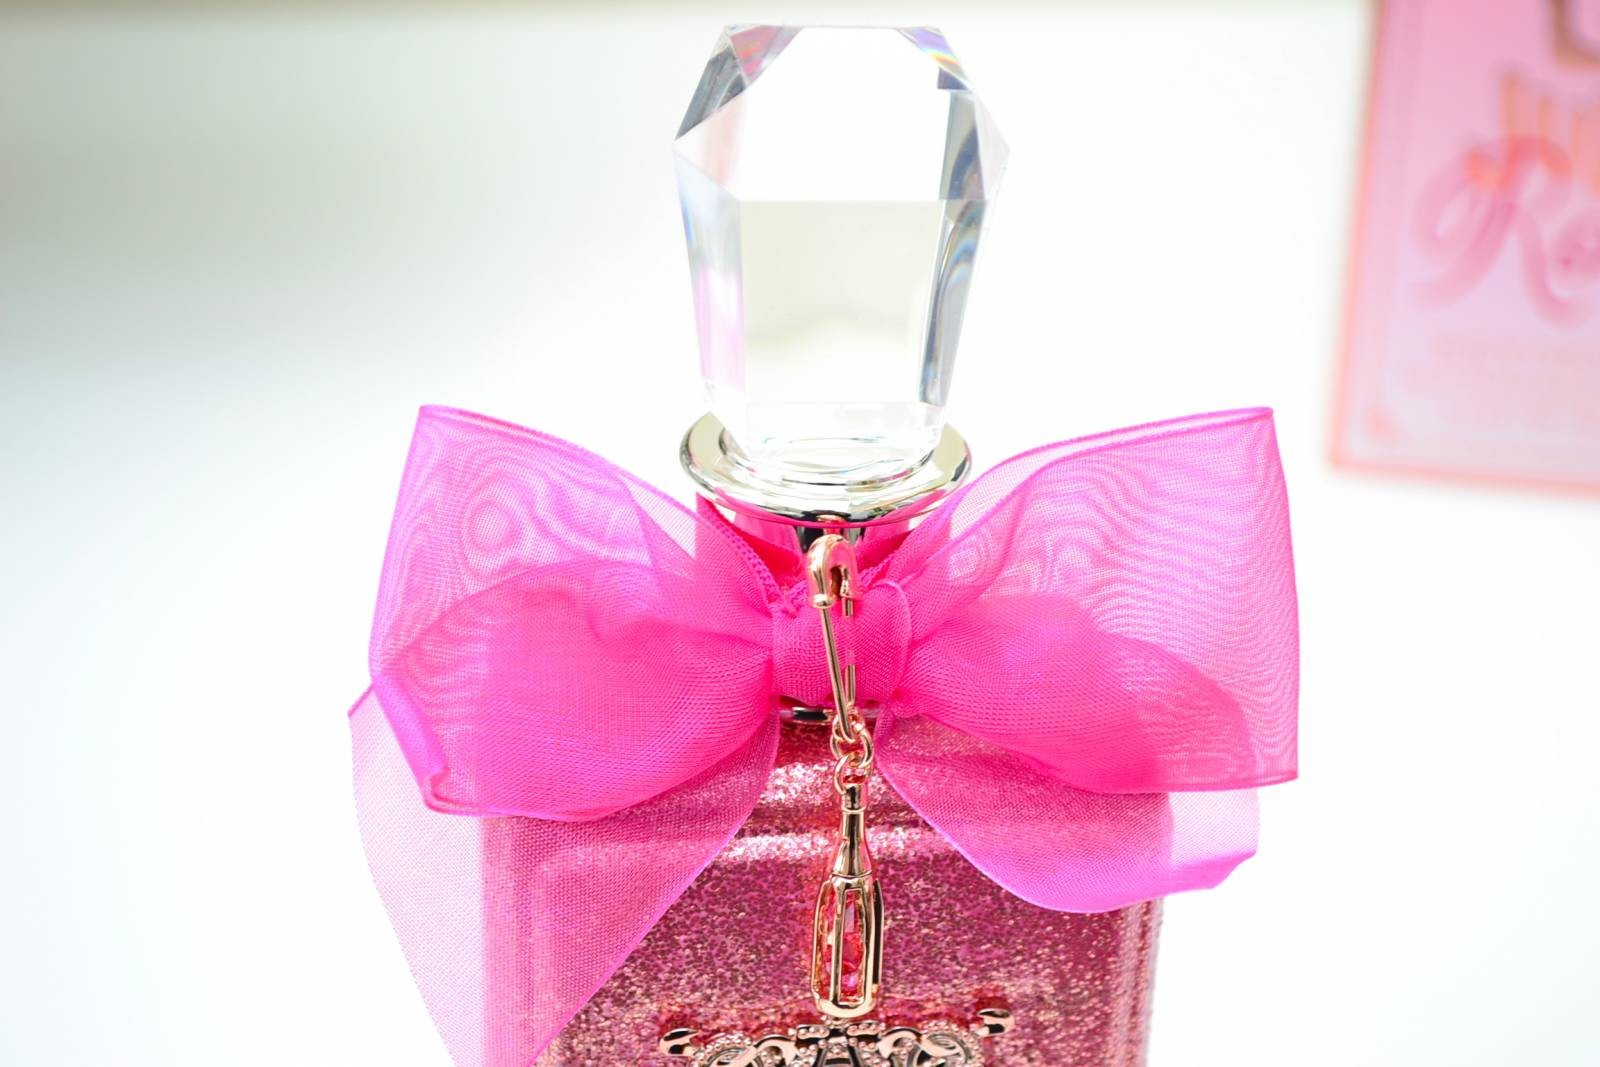 juicy-couture-viva-la-juicy-rose-perfume